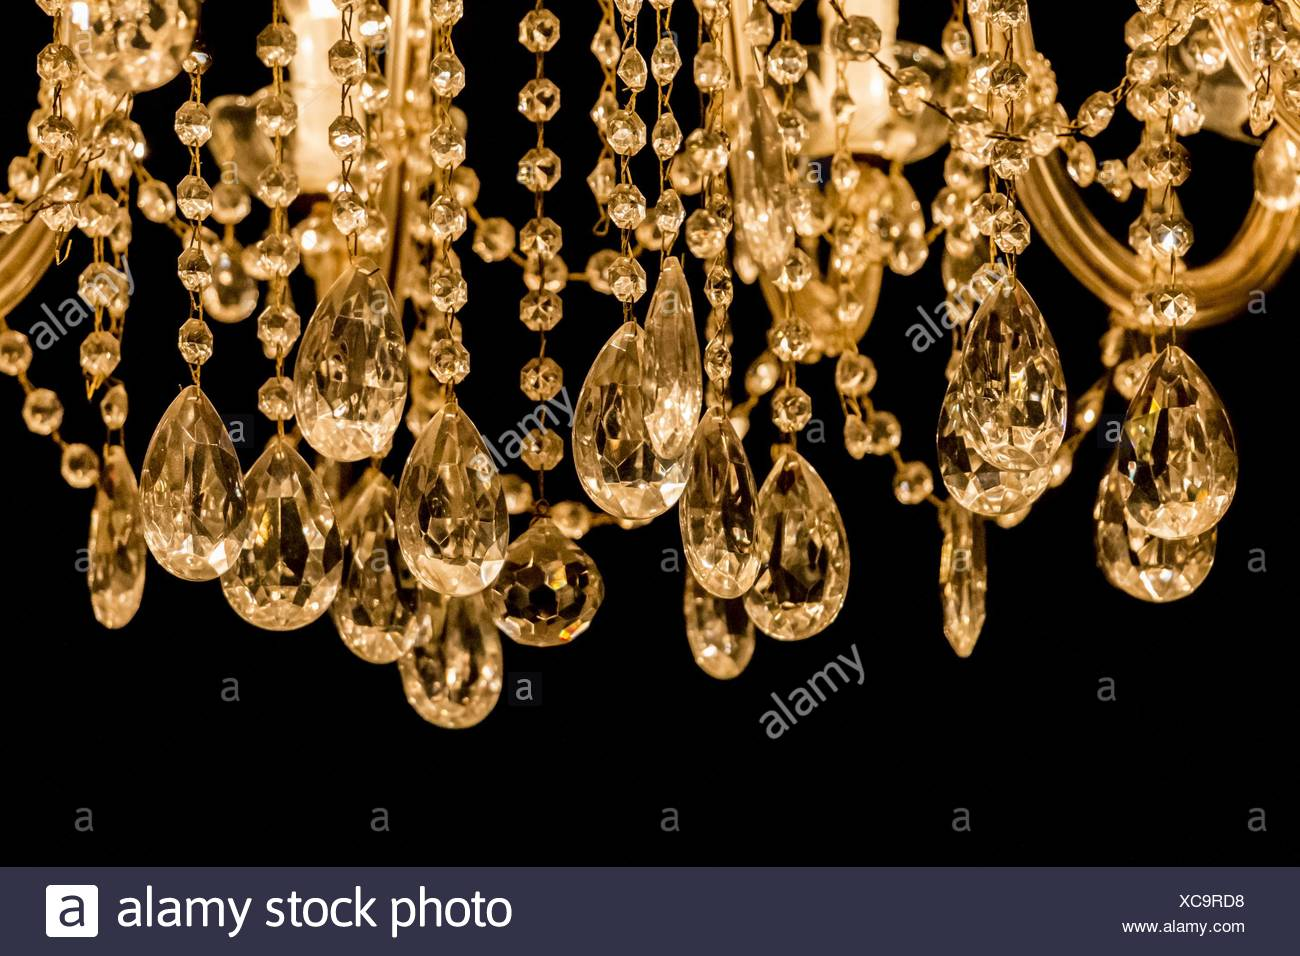 gallant chandelier with light candles and dark background Stock 1300x956